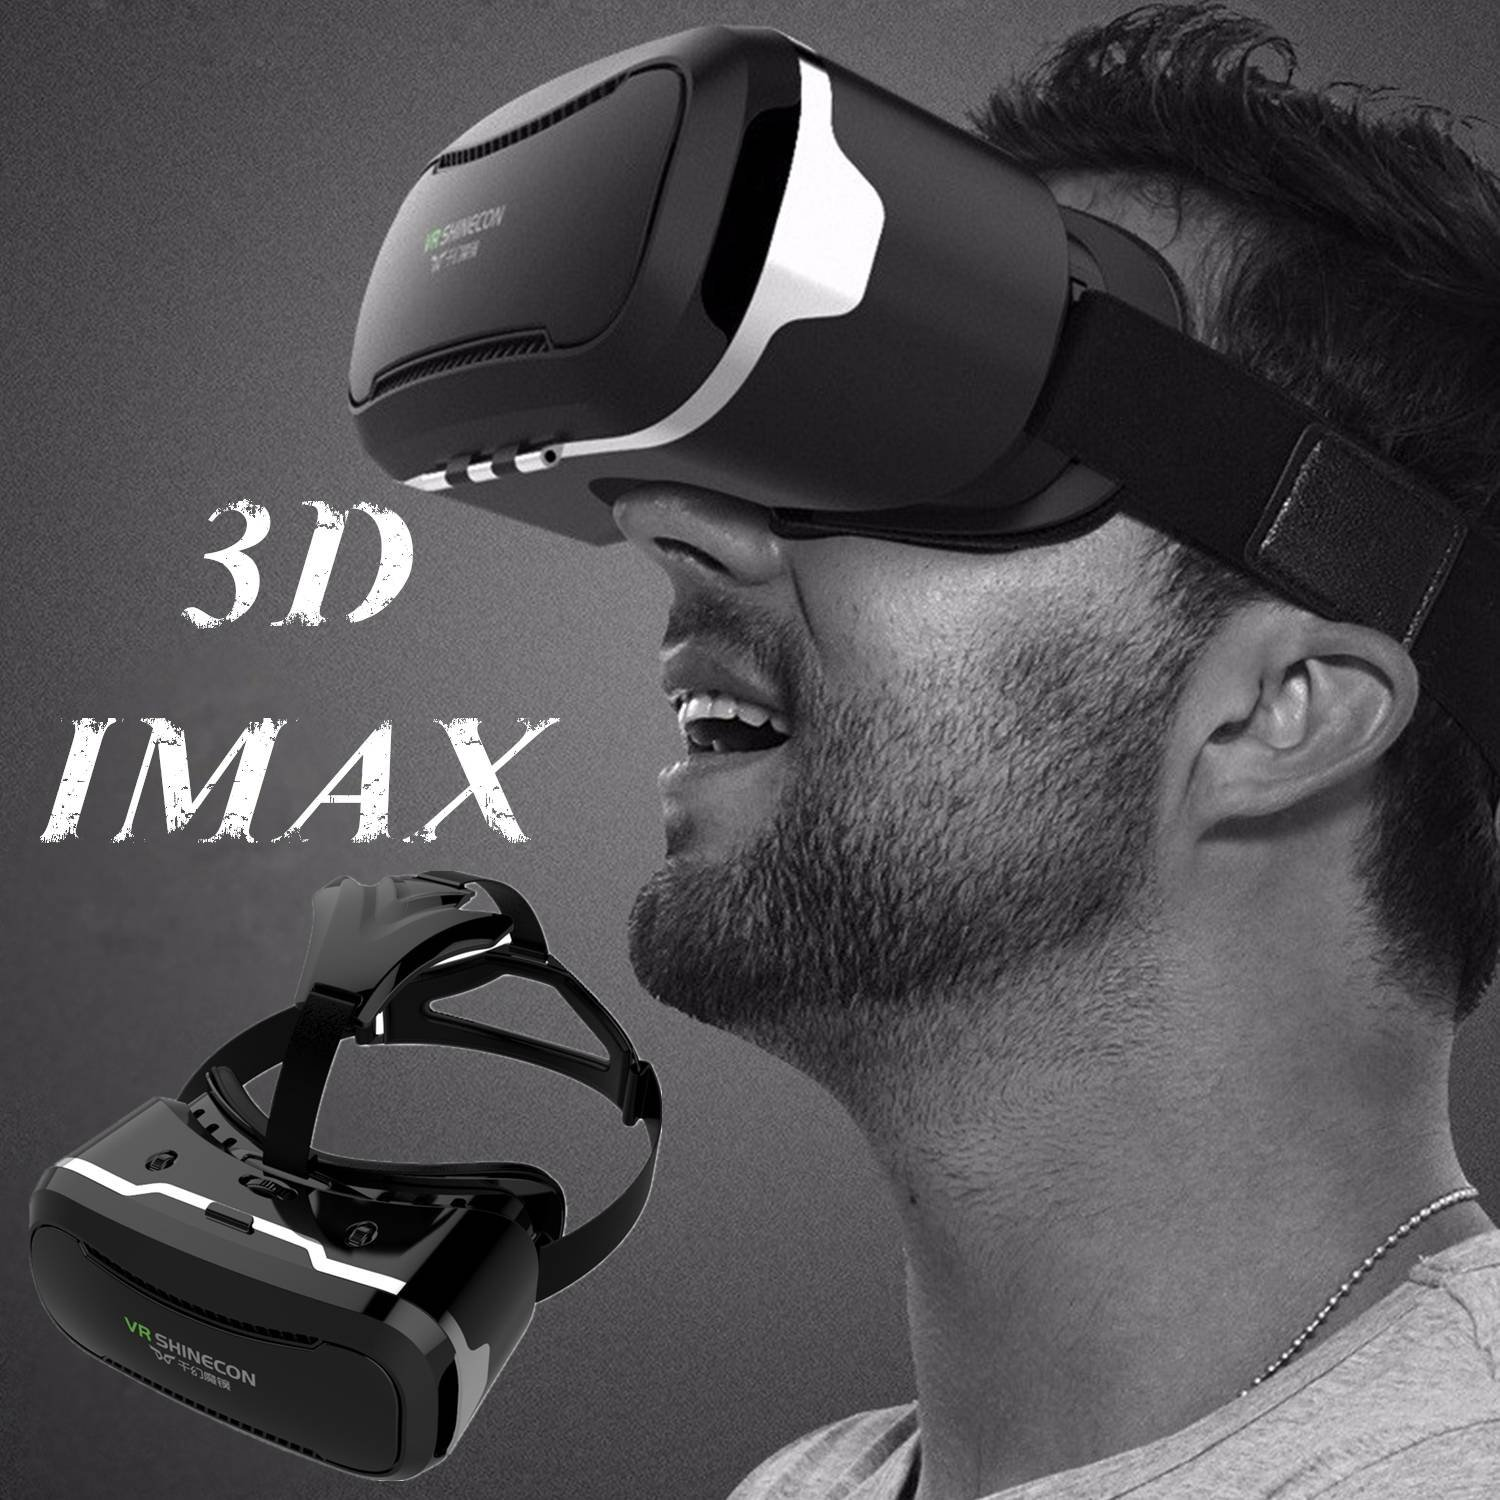 3D VR Goggles/Headset, Virtual Reality Glasses for [3D IMAX] Movies Videos Games, Phone Box 360 Viewer for IOS iPhone 8 7 6S 6 Plus Android Samsung S8 S7 S6 Edge PC LG & Other 4.5''-6.0'' Smartphones by TSANGLIGHT